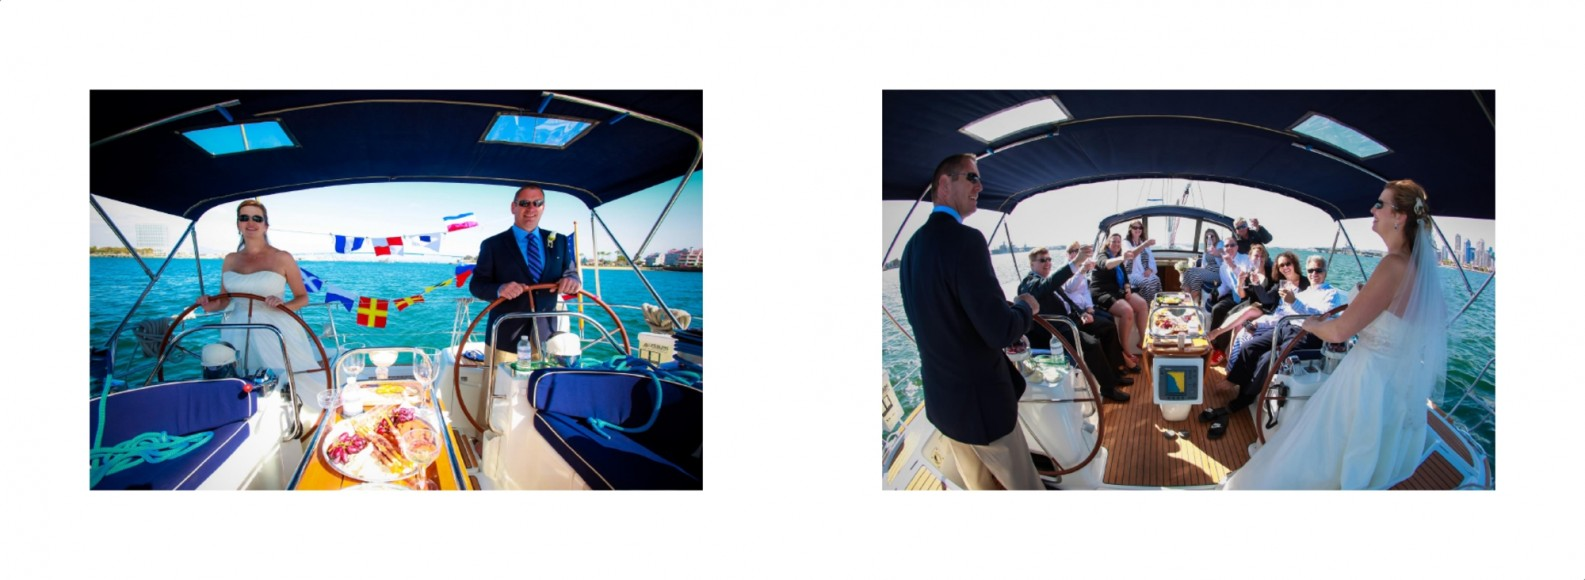 Laura and Davids Wedding Book - San Diego Yacht Wedding by Wedding Photographers Andrew Abouna - Pages 28-29